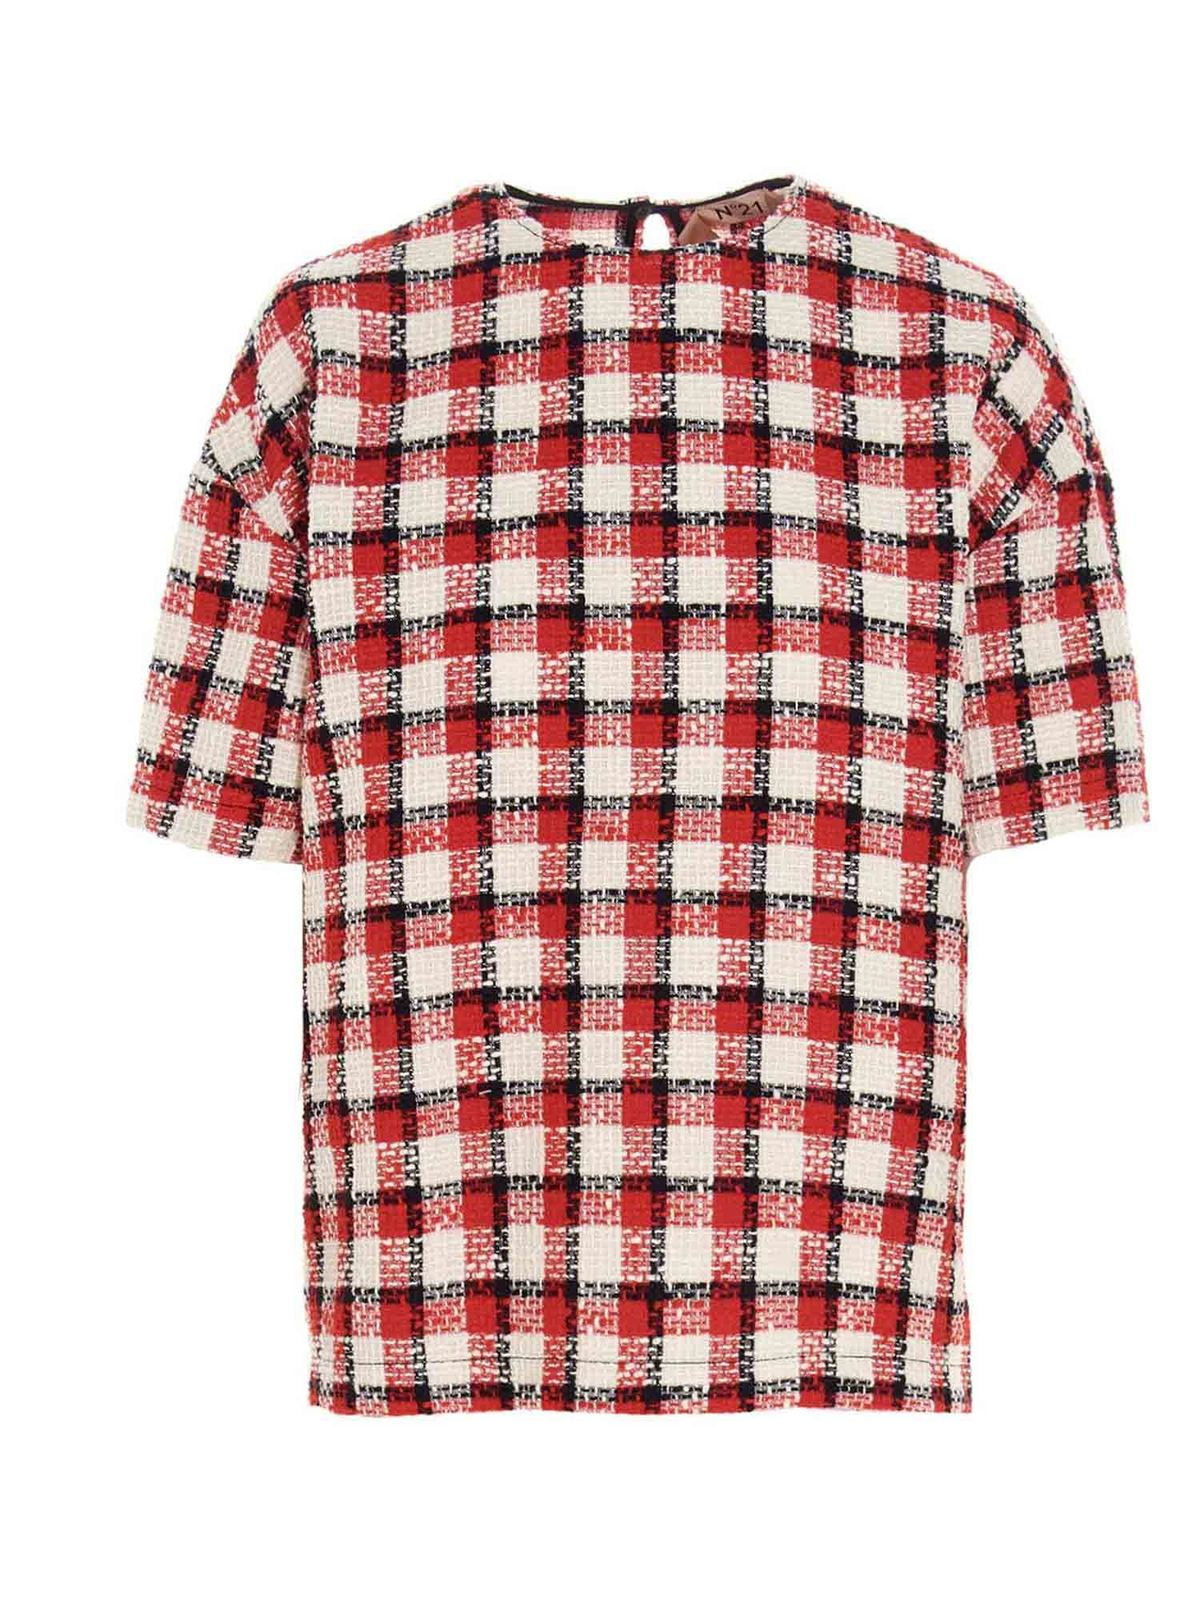 N°21 CHECKED TWEED T-SHIRT IN RED